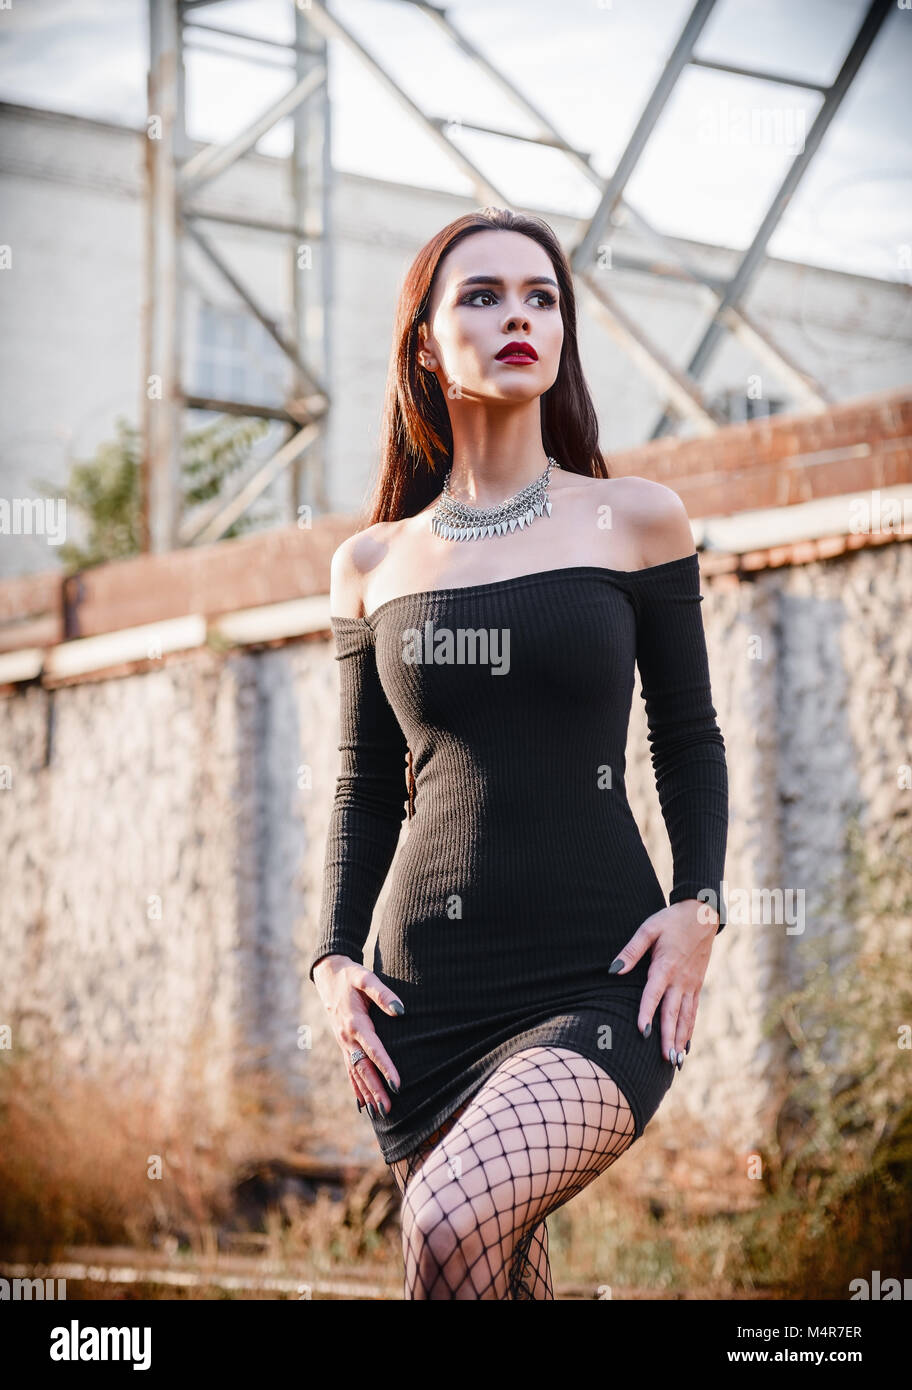 Portrait of the beautiful goth girl (informal model) in black dress and tights standing in industrial area - Stock Image